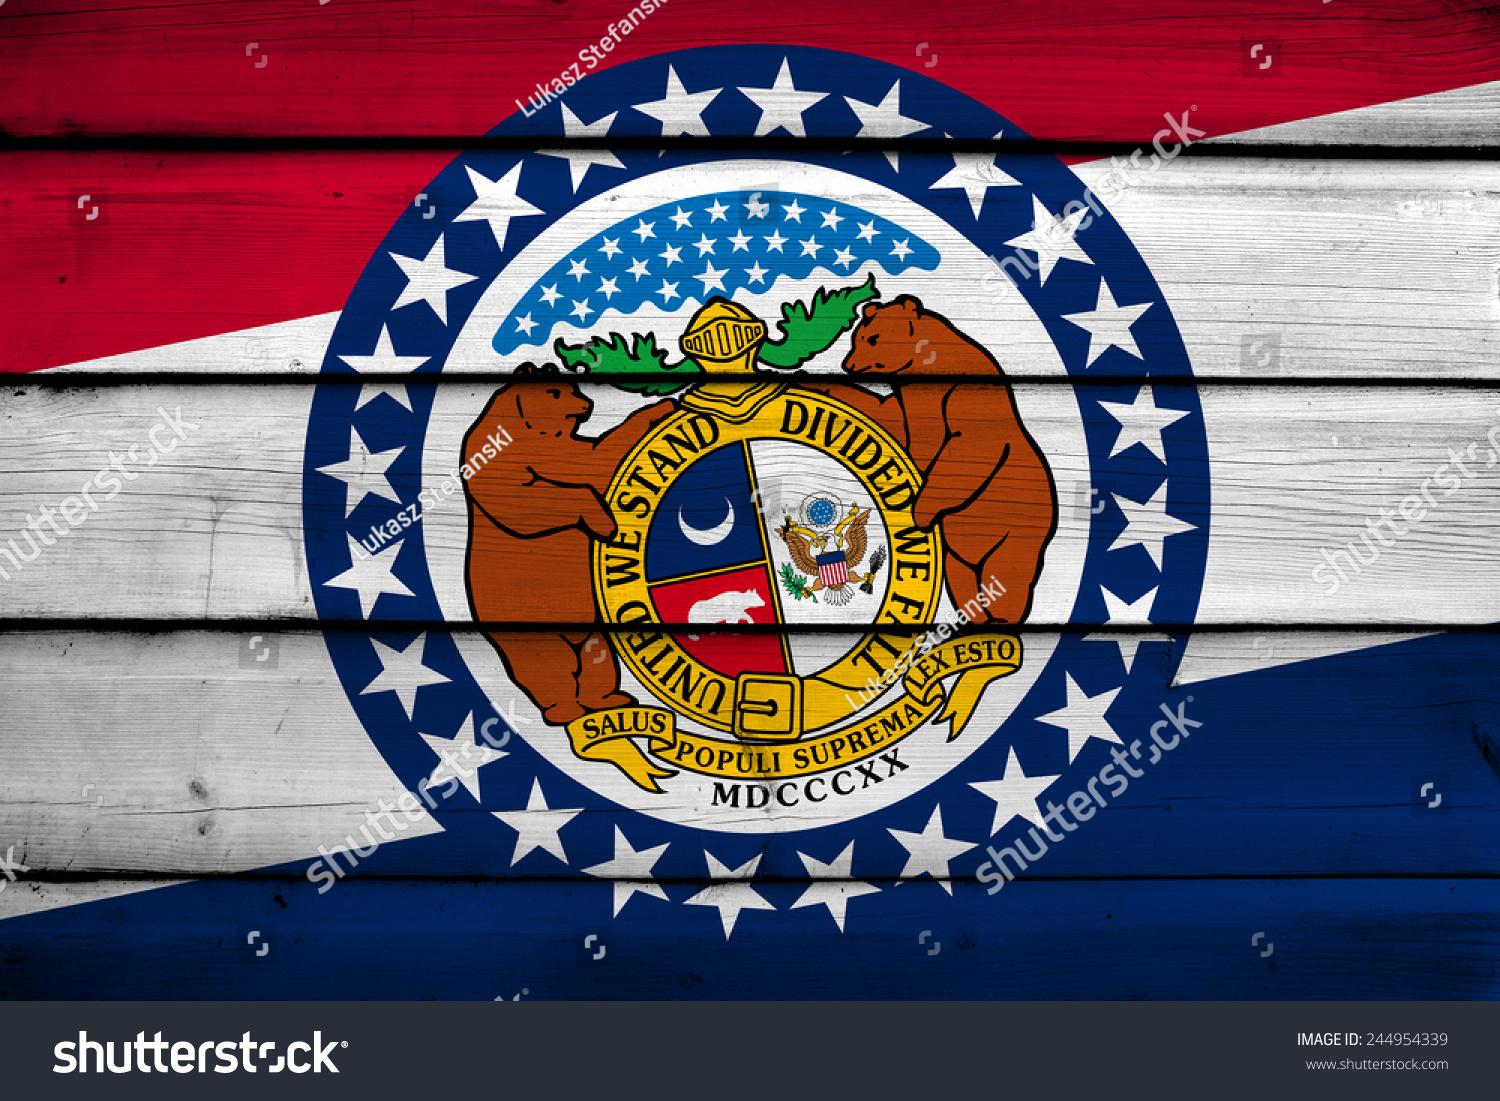 Missouri state flag on wood background stock illustration missouri state flag on wood background buycottarizona